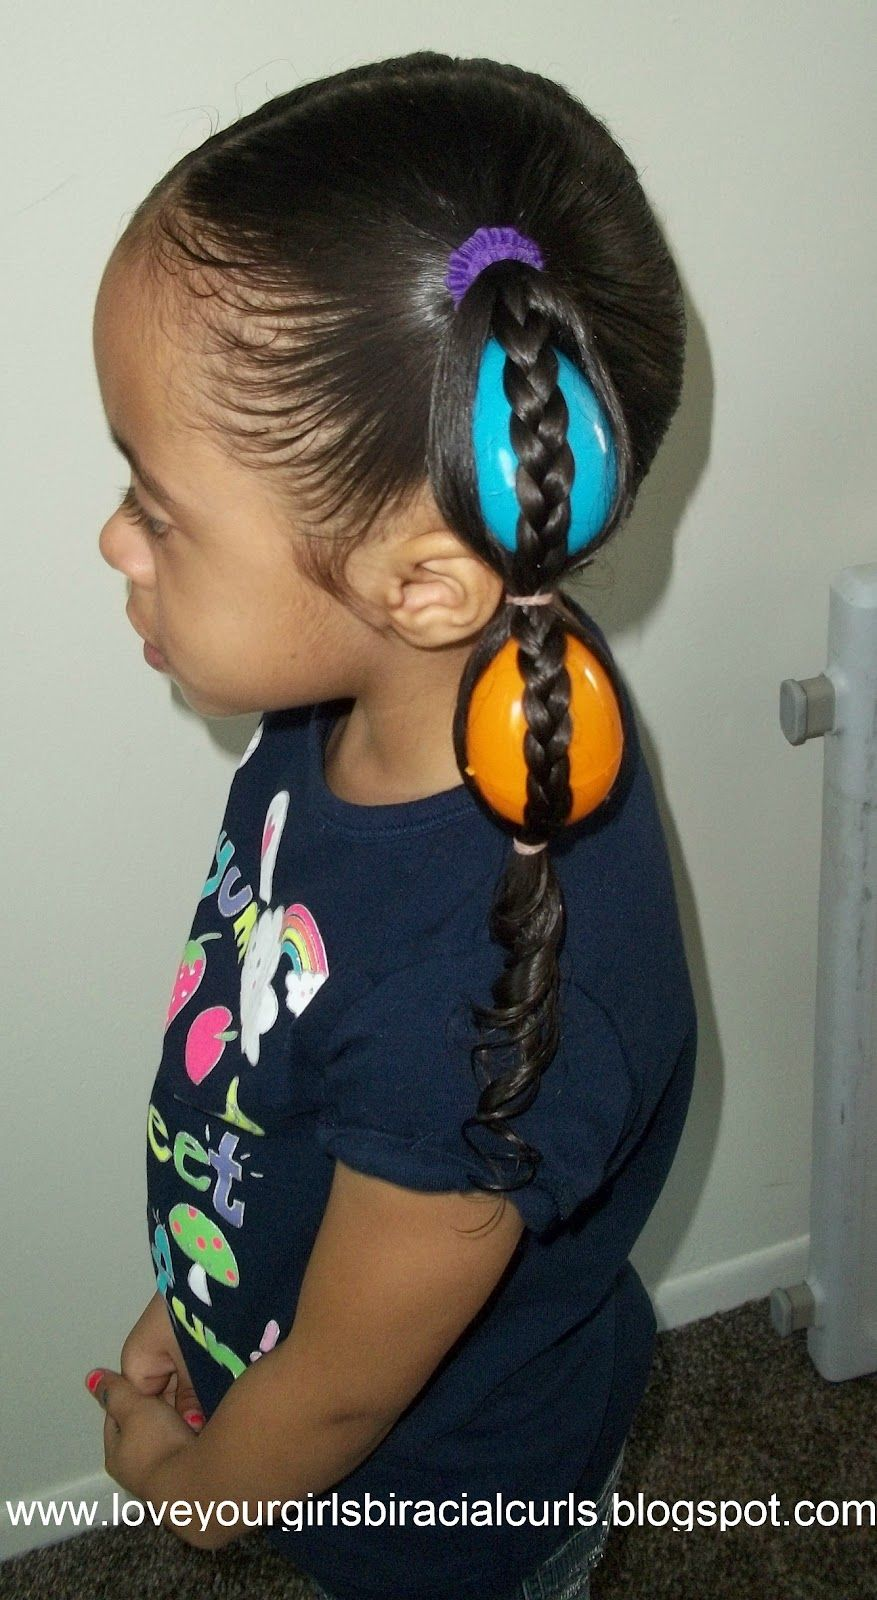 Magnificent Mixed Girl Hairstyles Mixed Girls And Girl Hairstyles On Pinterest Short Hairstyles For Black Women Fulllsitofus